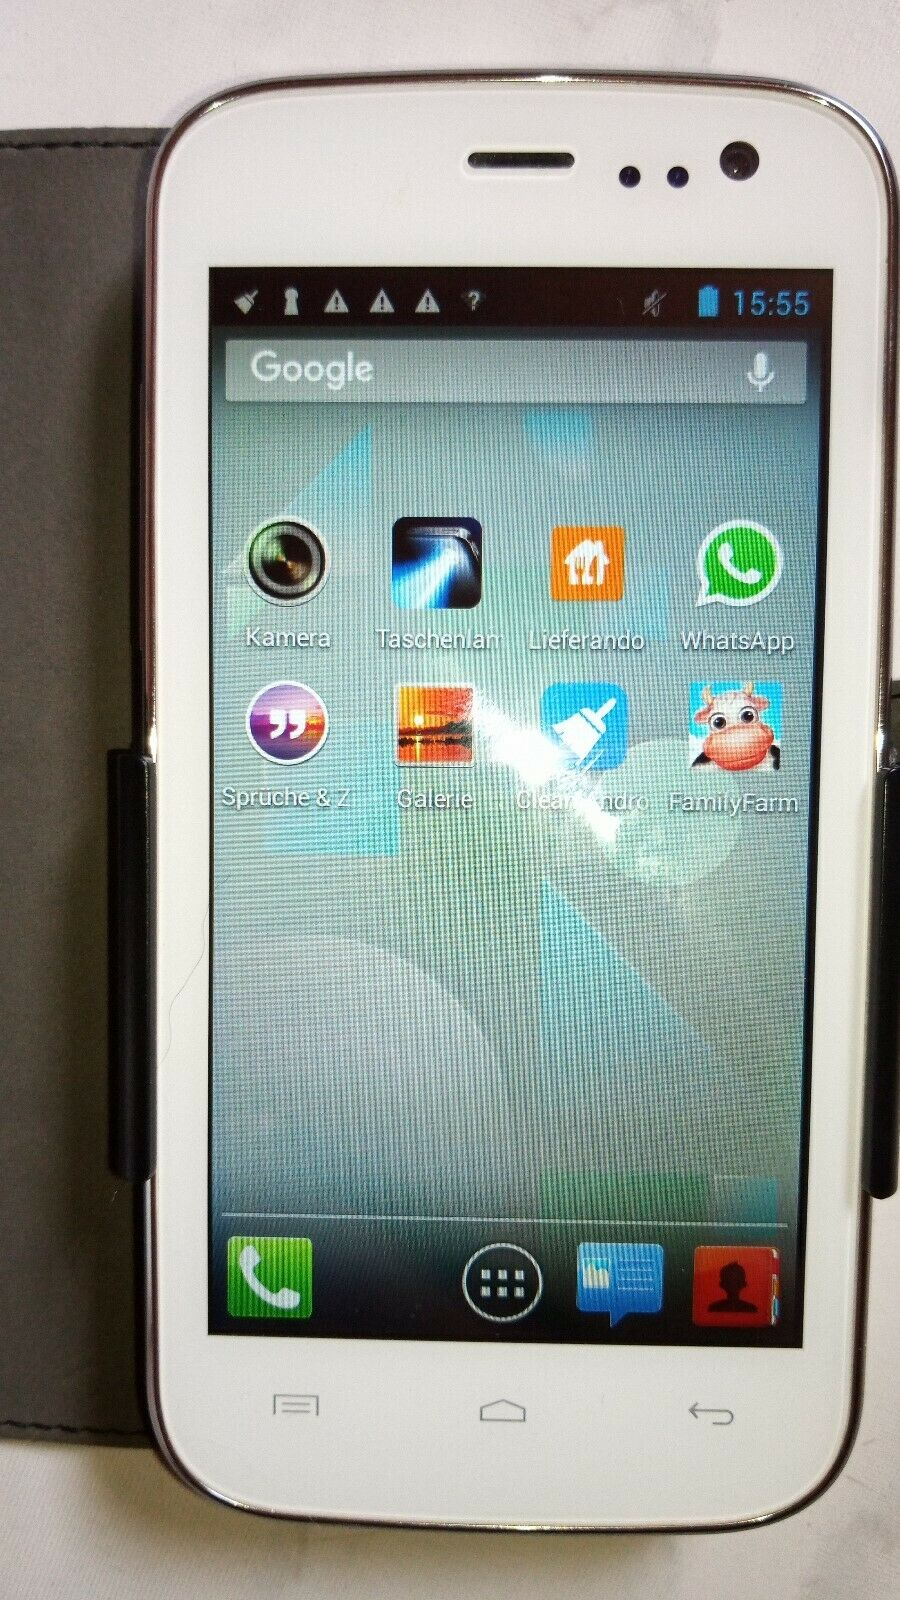 Mobistel Cynus F4 4,5 zoll Smartphone 2GB Touchscreen Dual-SIM Android in Weiß